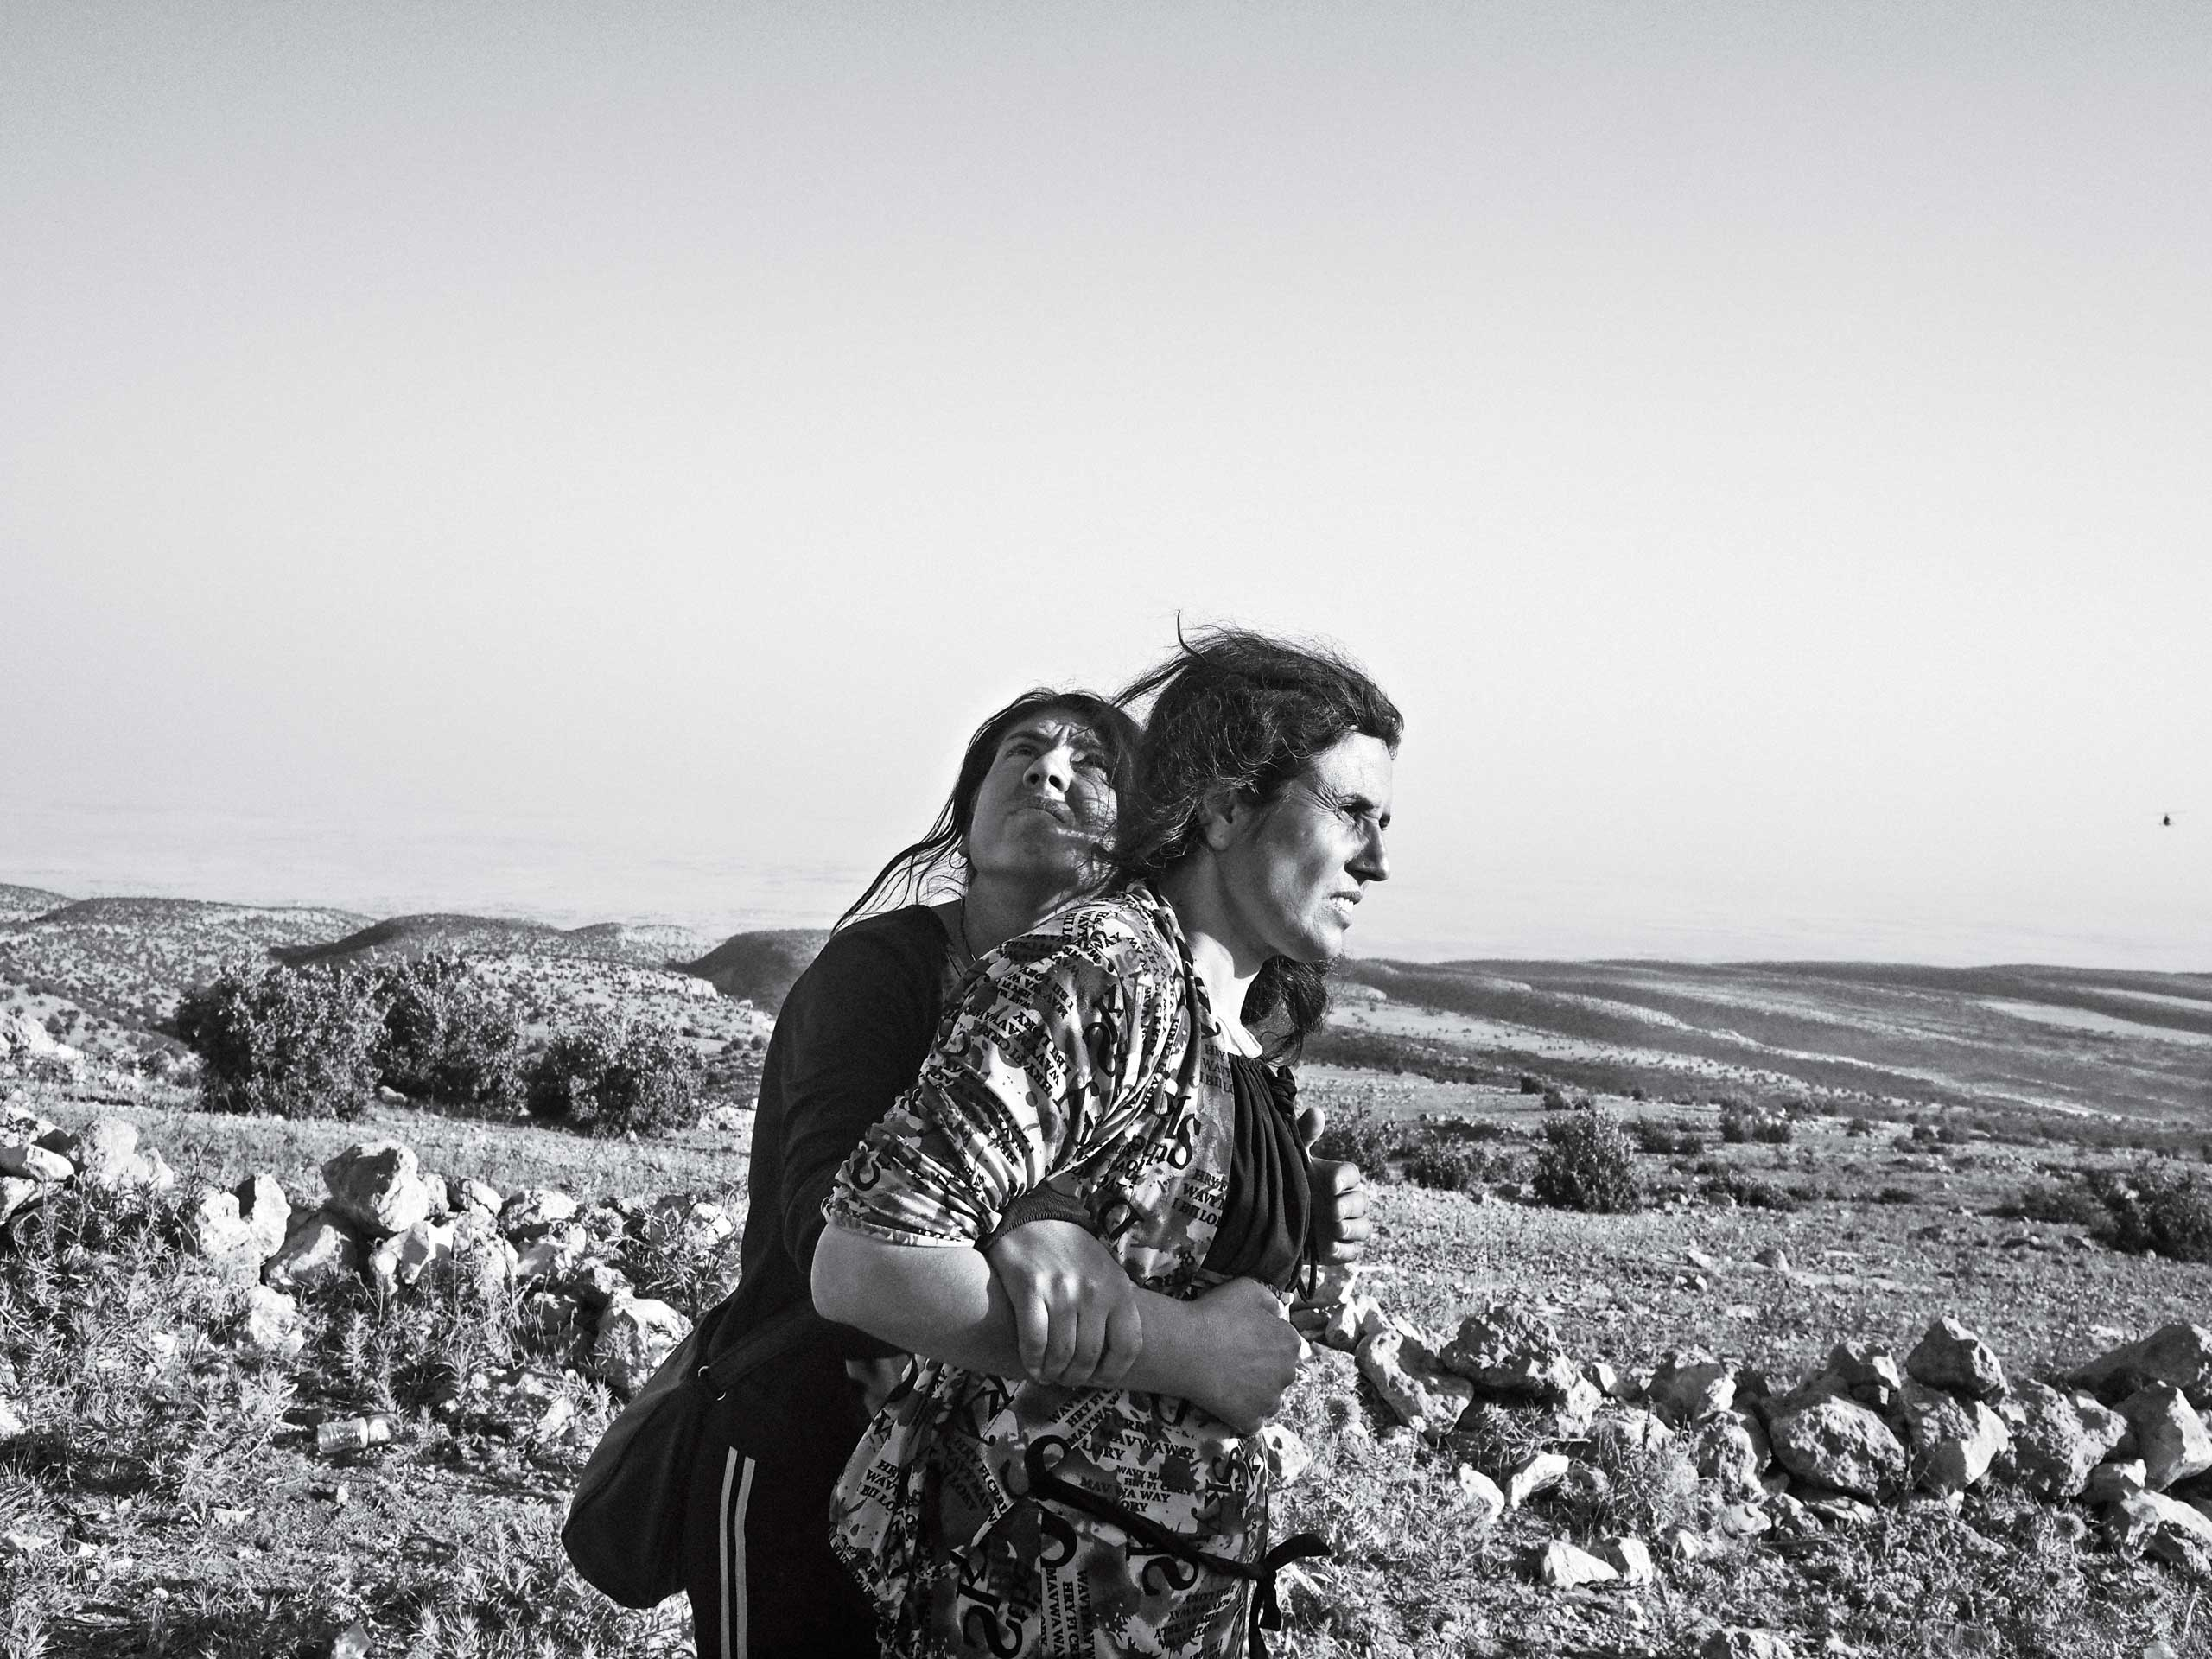 Sinjar Mountains, Iraq. August 12, 2014. Yezidi women stranded in the Sinjar Mountains wait for the arrival of a rescue helicopter.From  Tragedy on Mount Sinjar